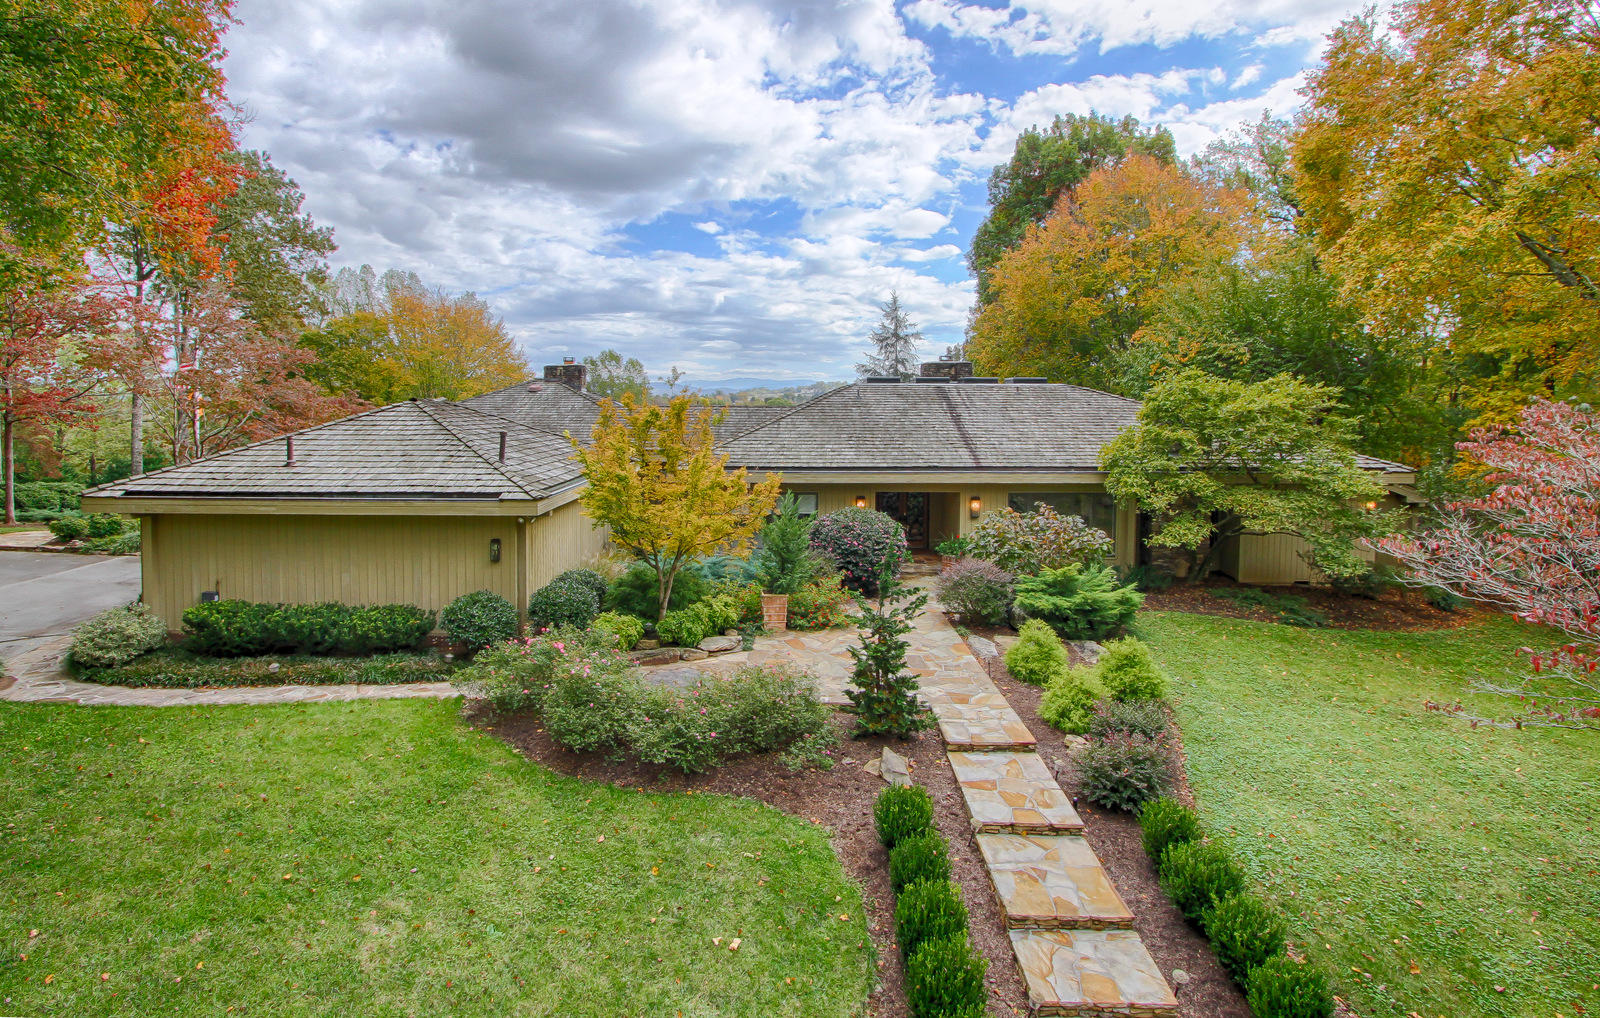 3940 TOPSIDE RD, KNOXVILLE, TN 37920